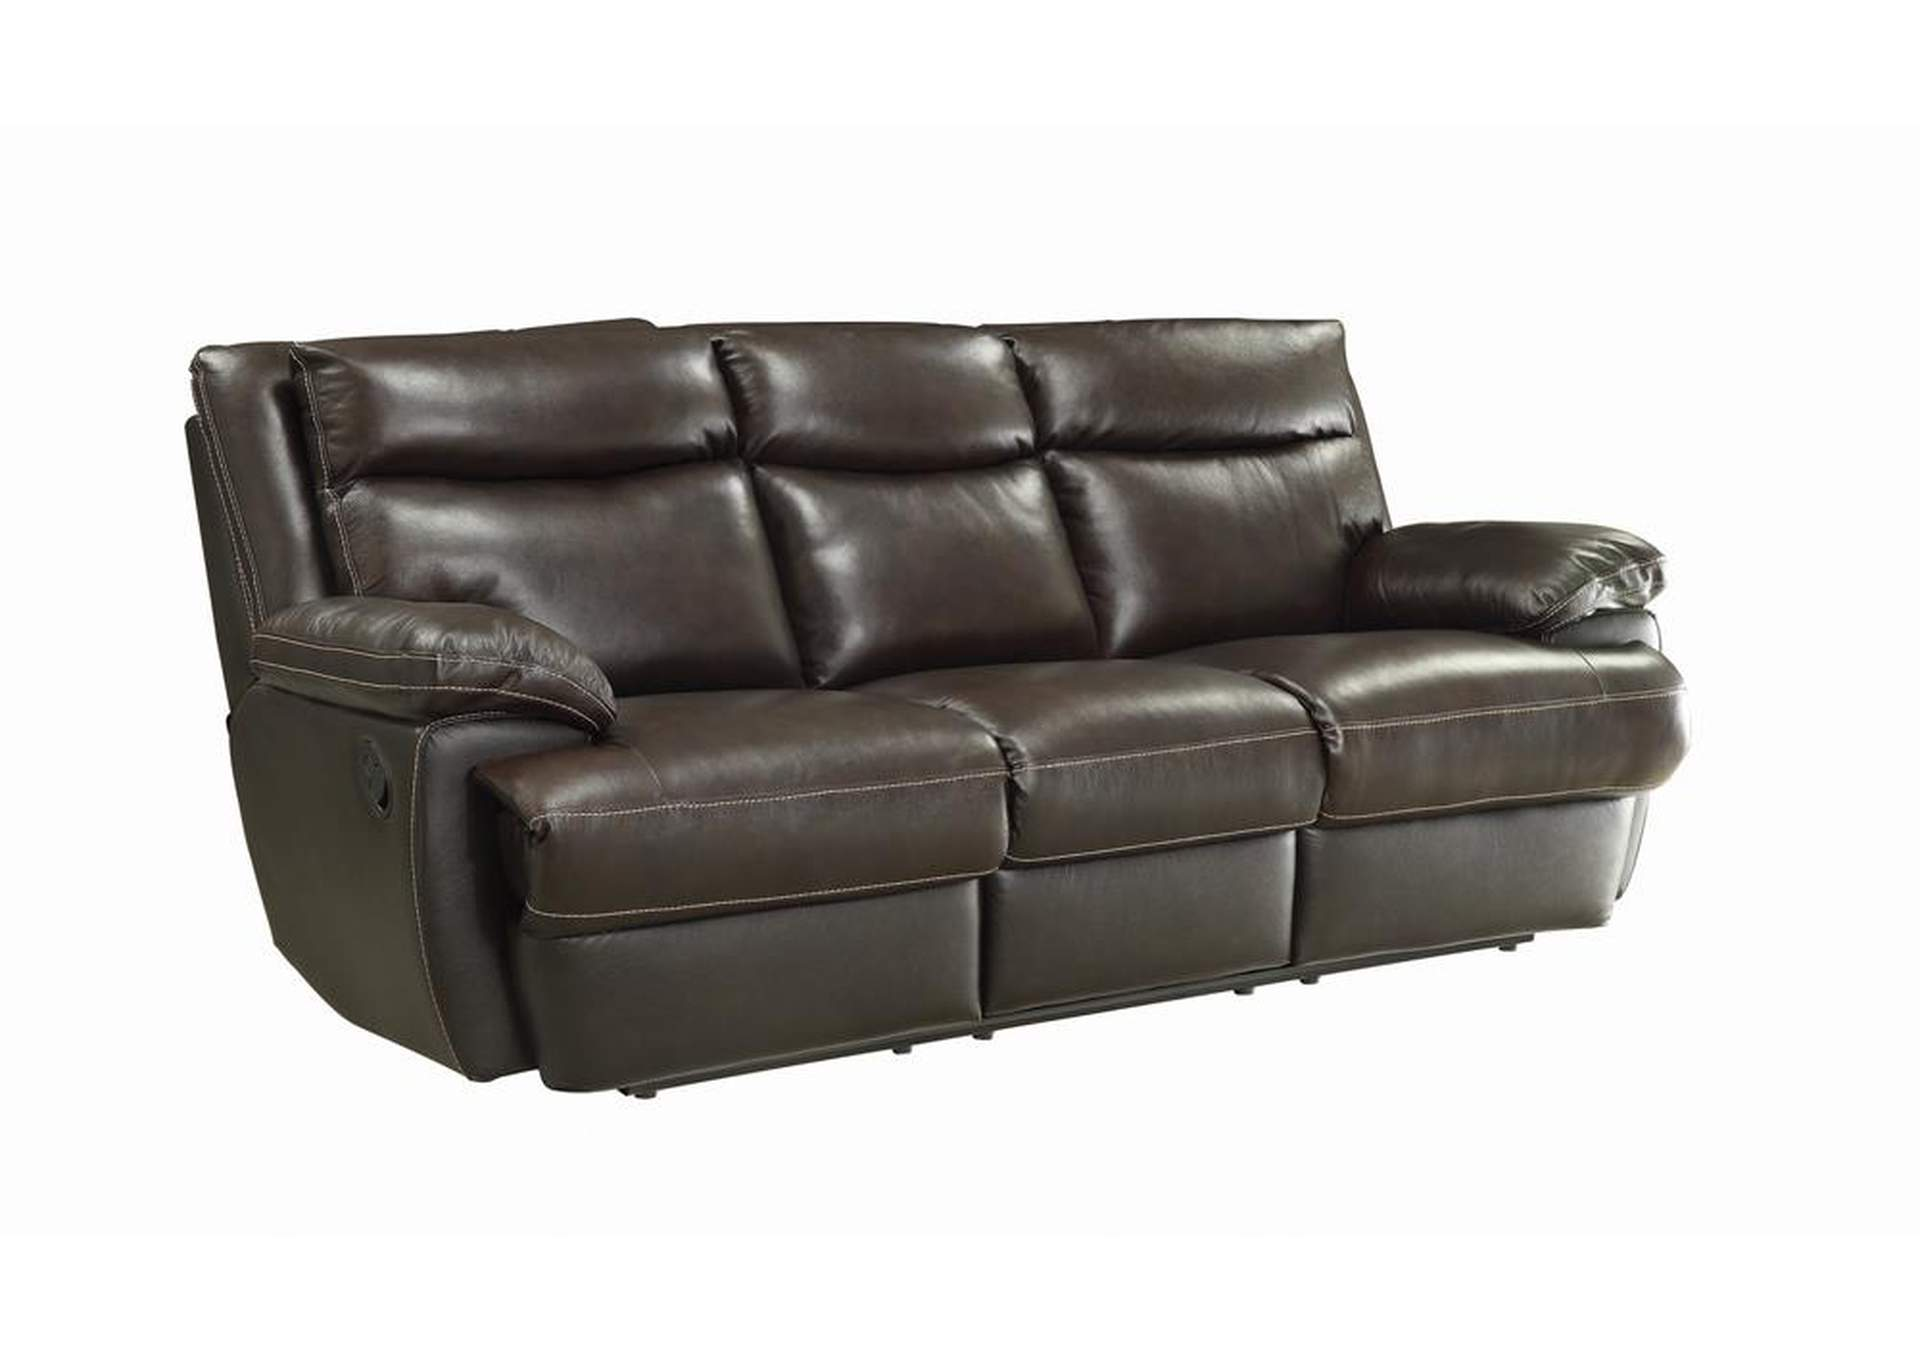 Armadillo MacPherson Brown Leather Reclining Sofa,Coaster Furniture